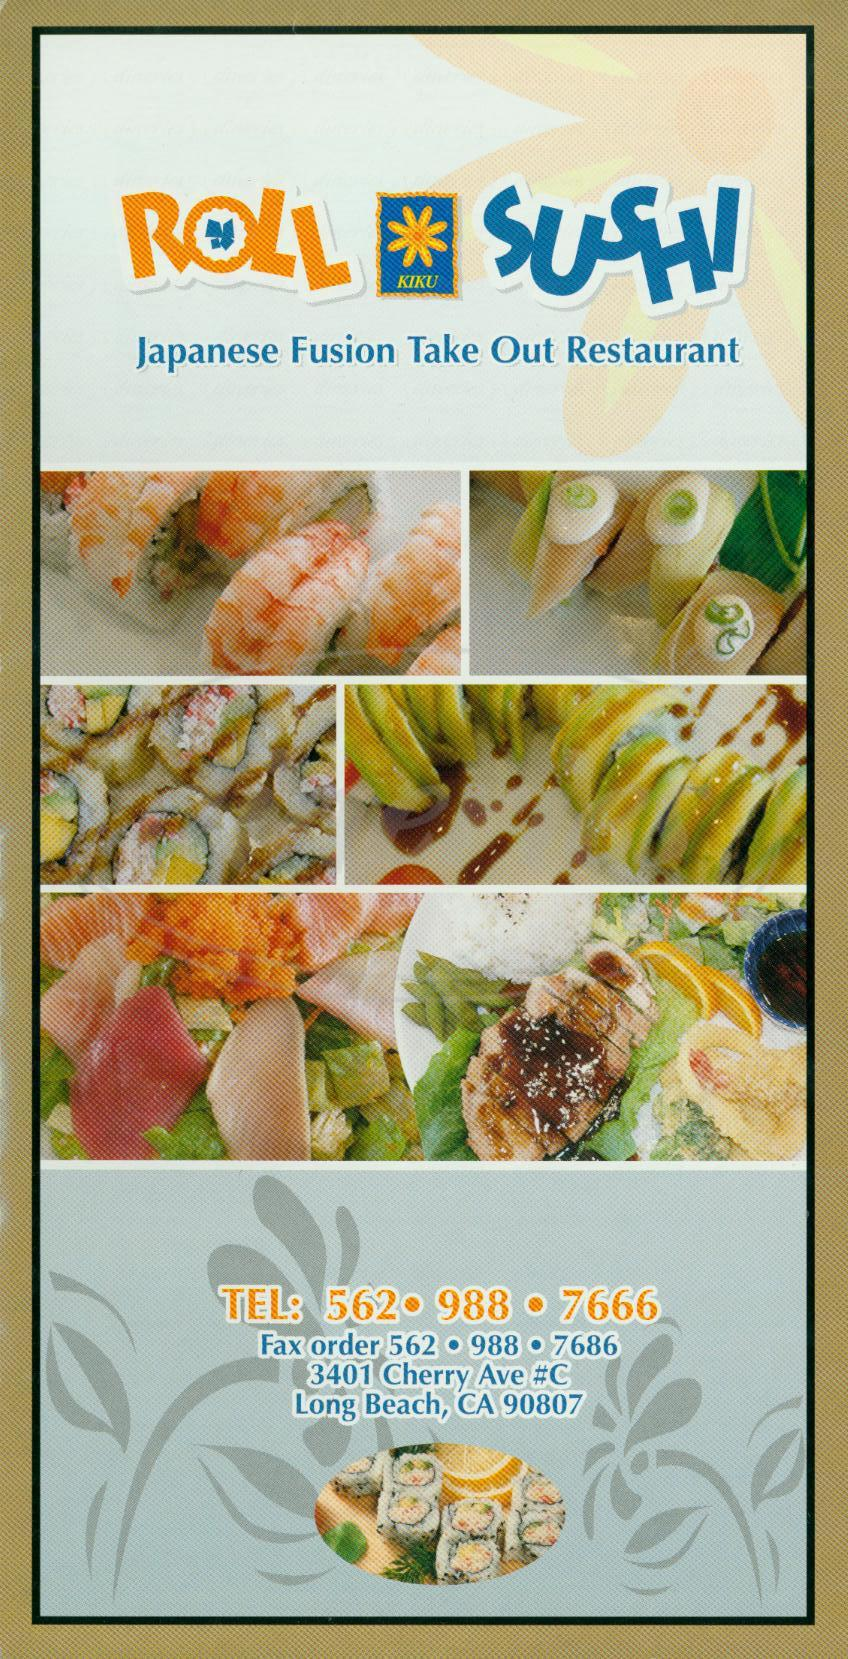 menu for Kiku Roll & Sushi